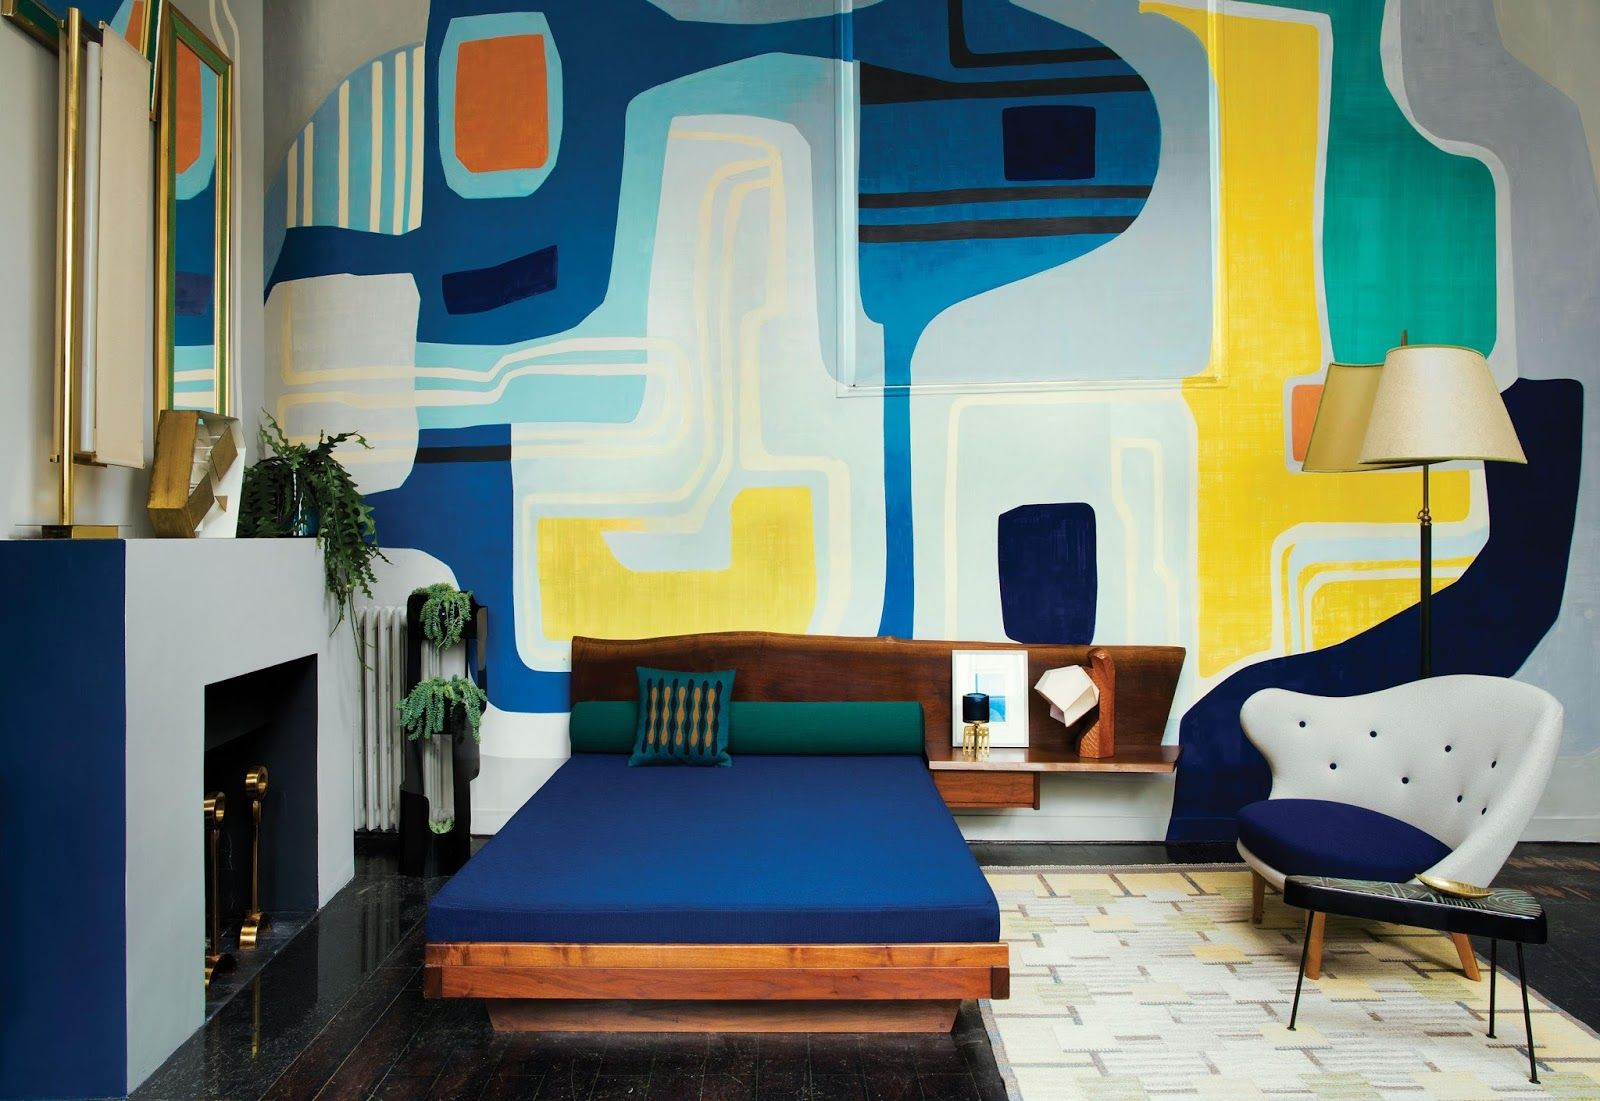 02 The master bedroom has a bold graphic wall that looks as an oversized art piece - DigsDigs